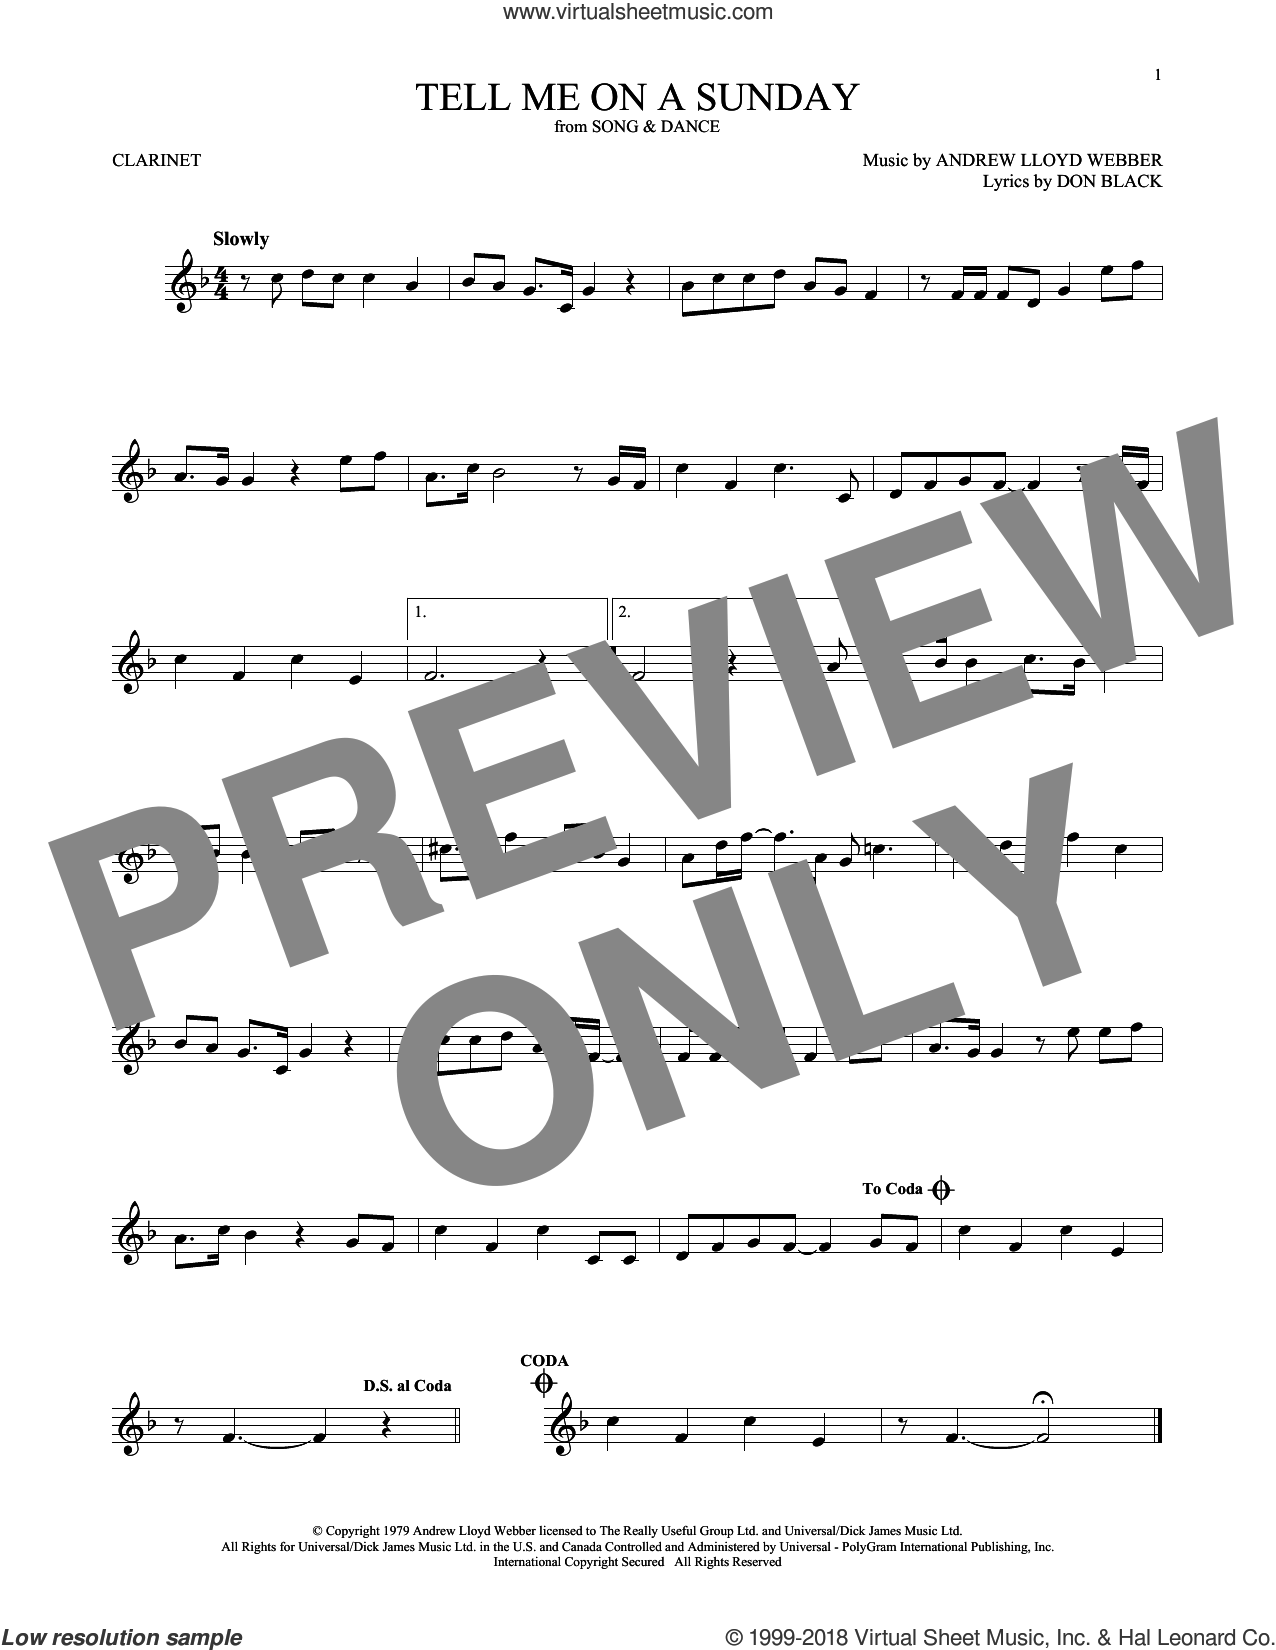 Tell Me On A Sunday sheet music for clarinet solo by Andrew Lloyd Webber and Don Black, intermediate skill level